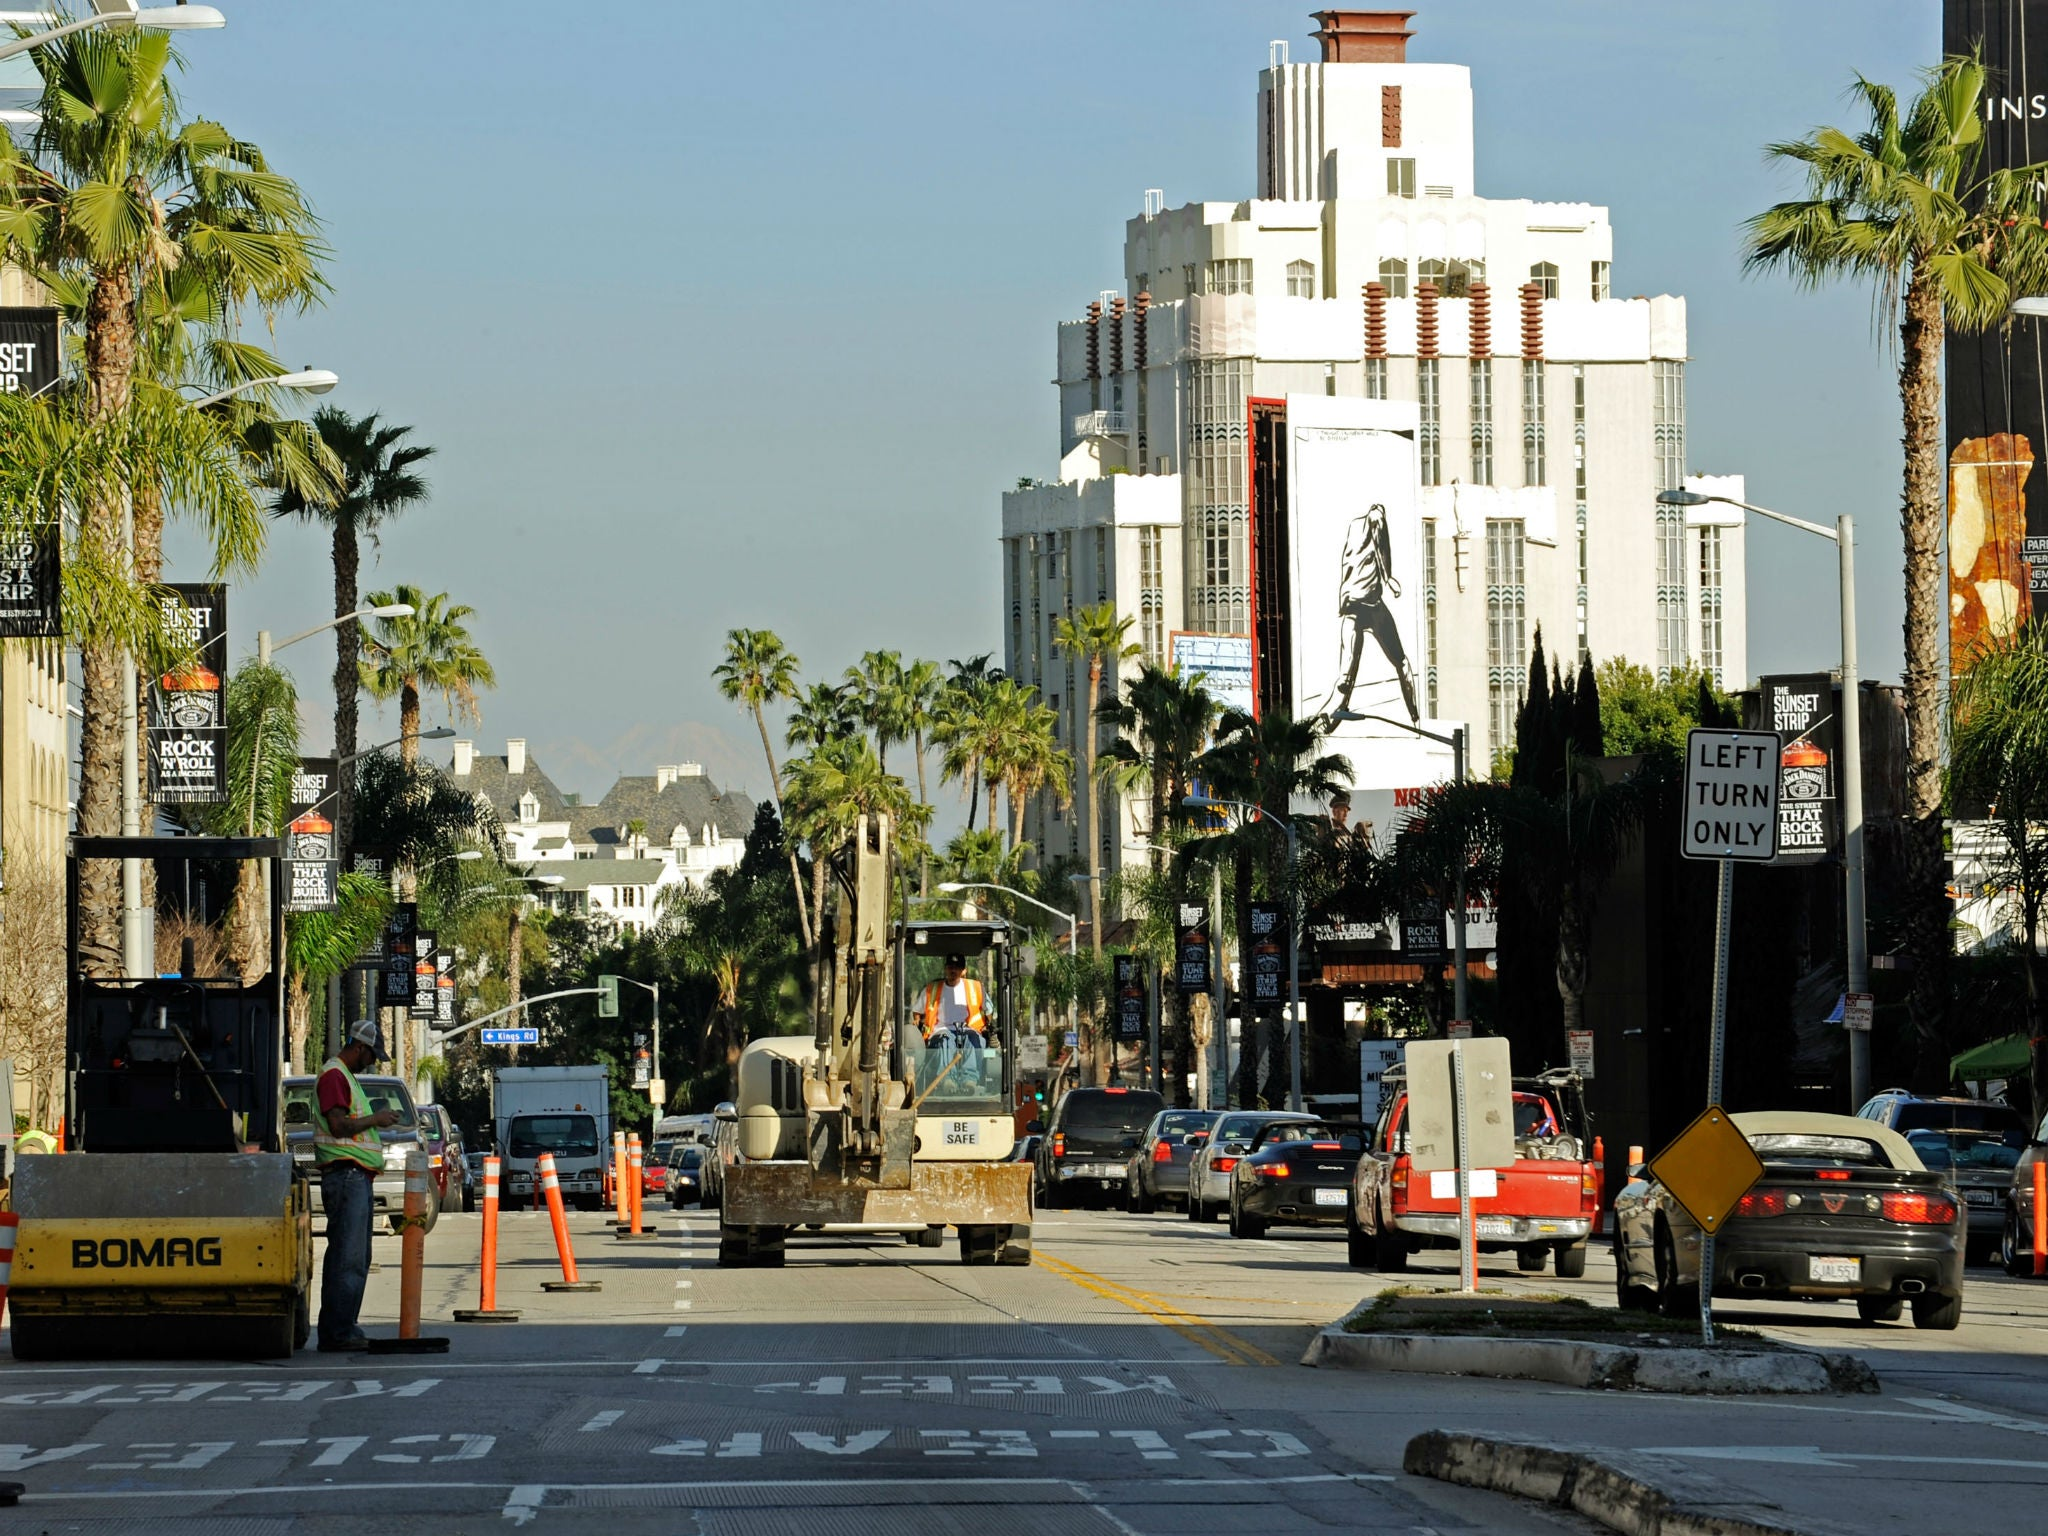 Earthquake could devastate California's Sunset Strip, study finds